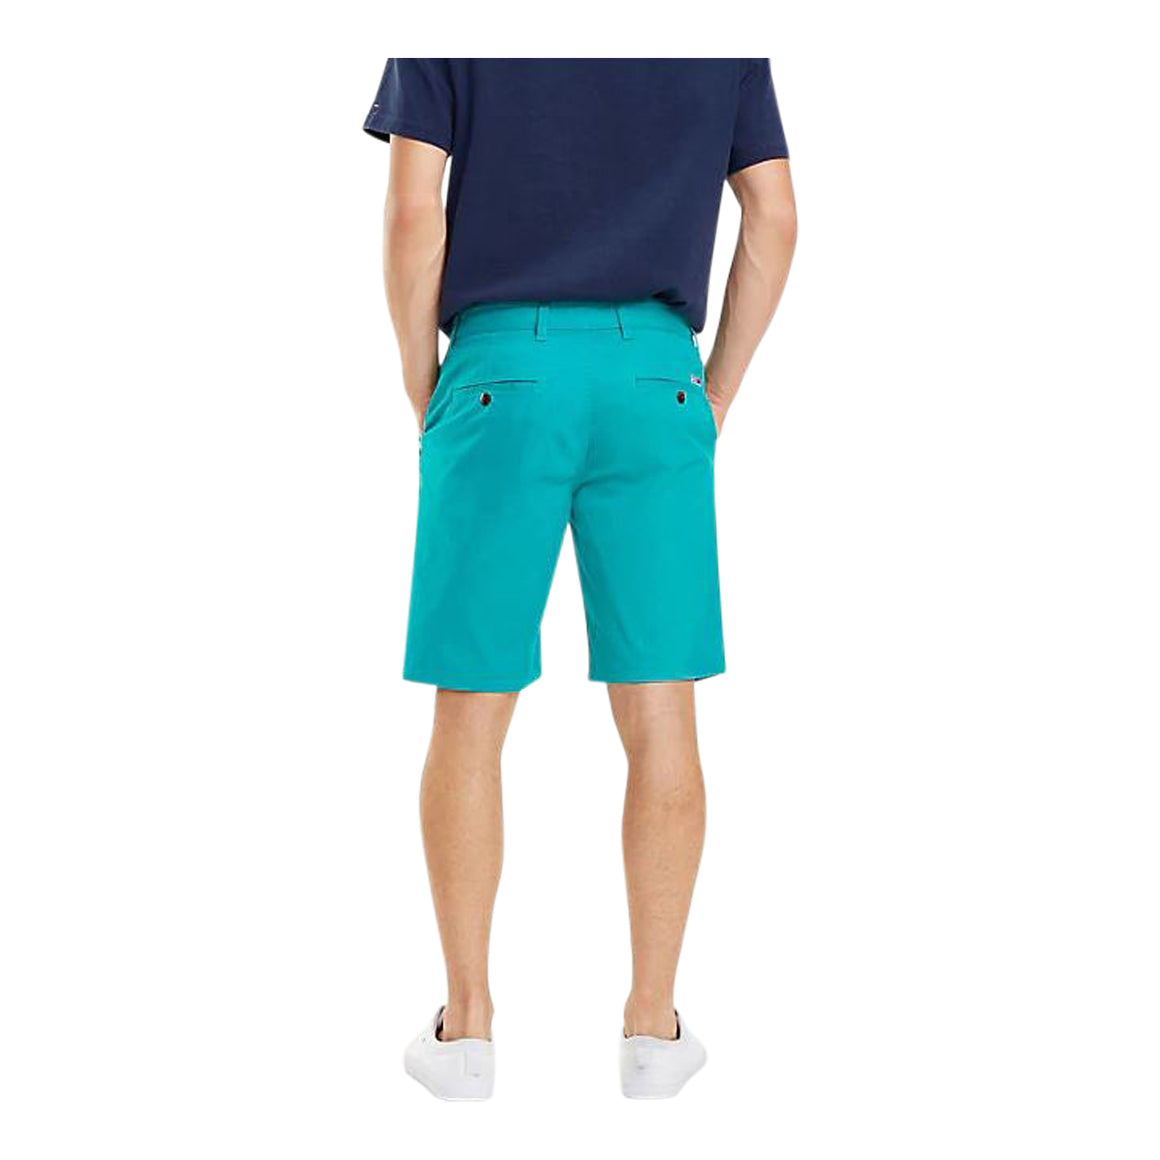 Chino Shorts for Men in Dynasty Green